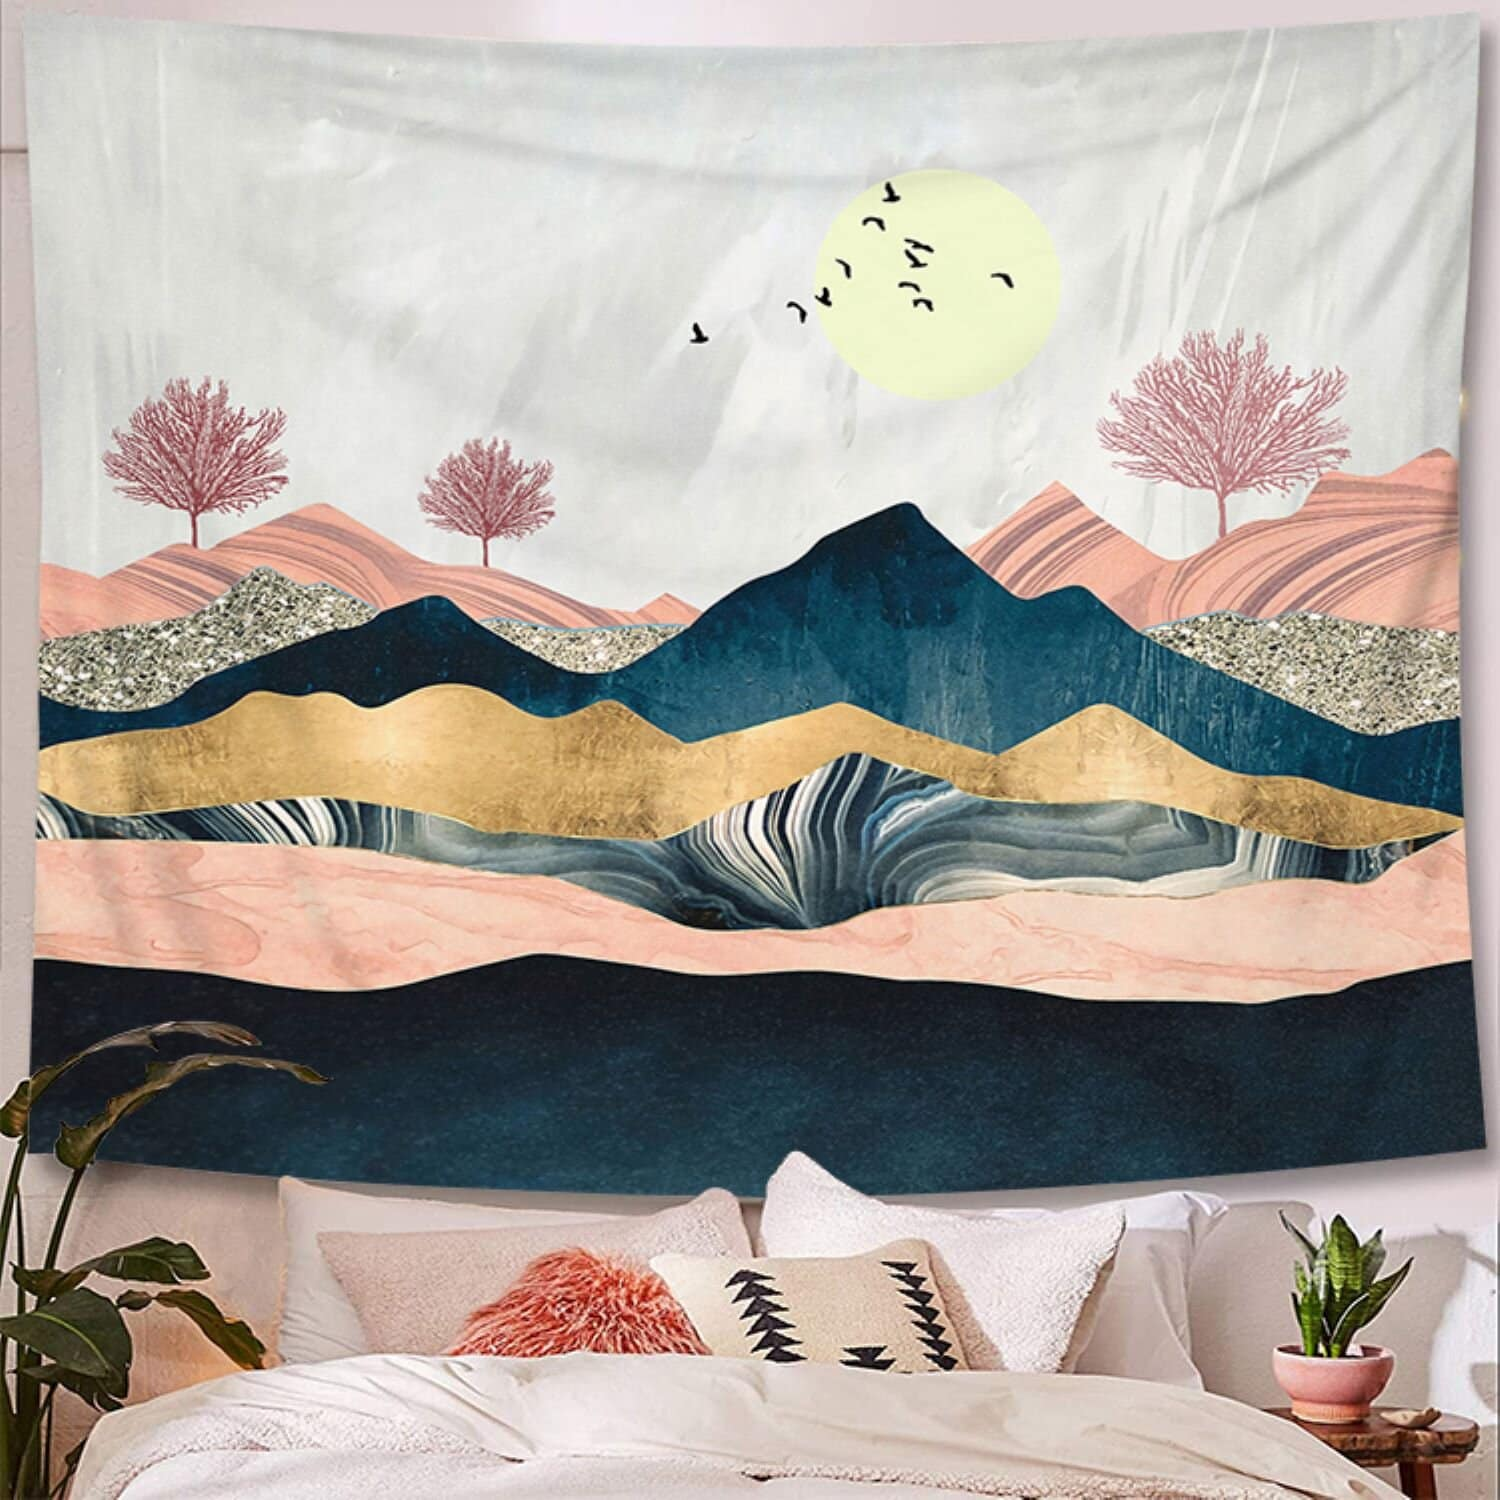 Create a Feature Wall With a Tapestry Wall Hanging